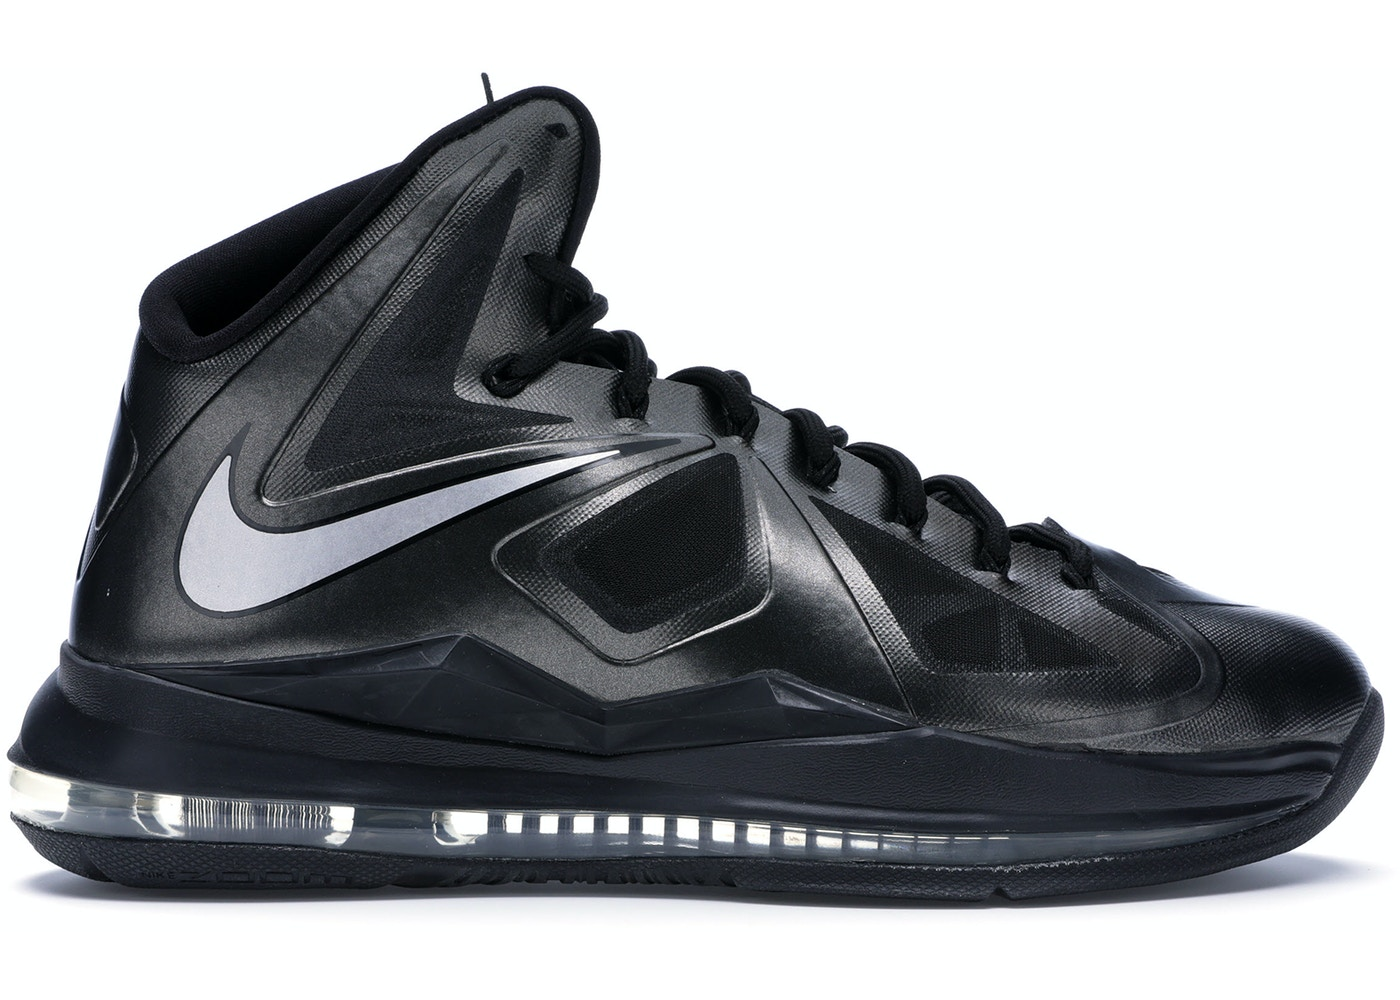 huge selection of 26c32 0bd55 LeBron X Carbon - 541100-001